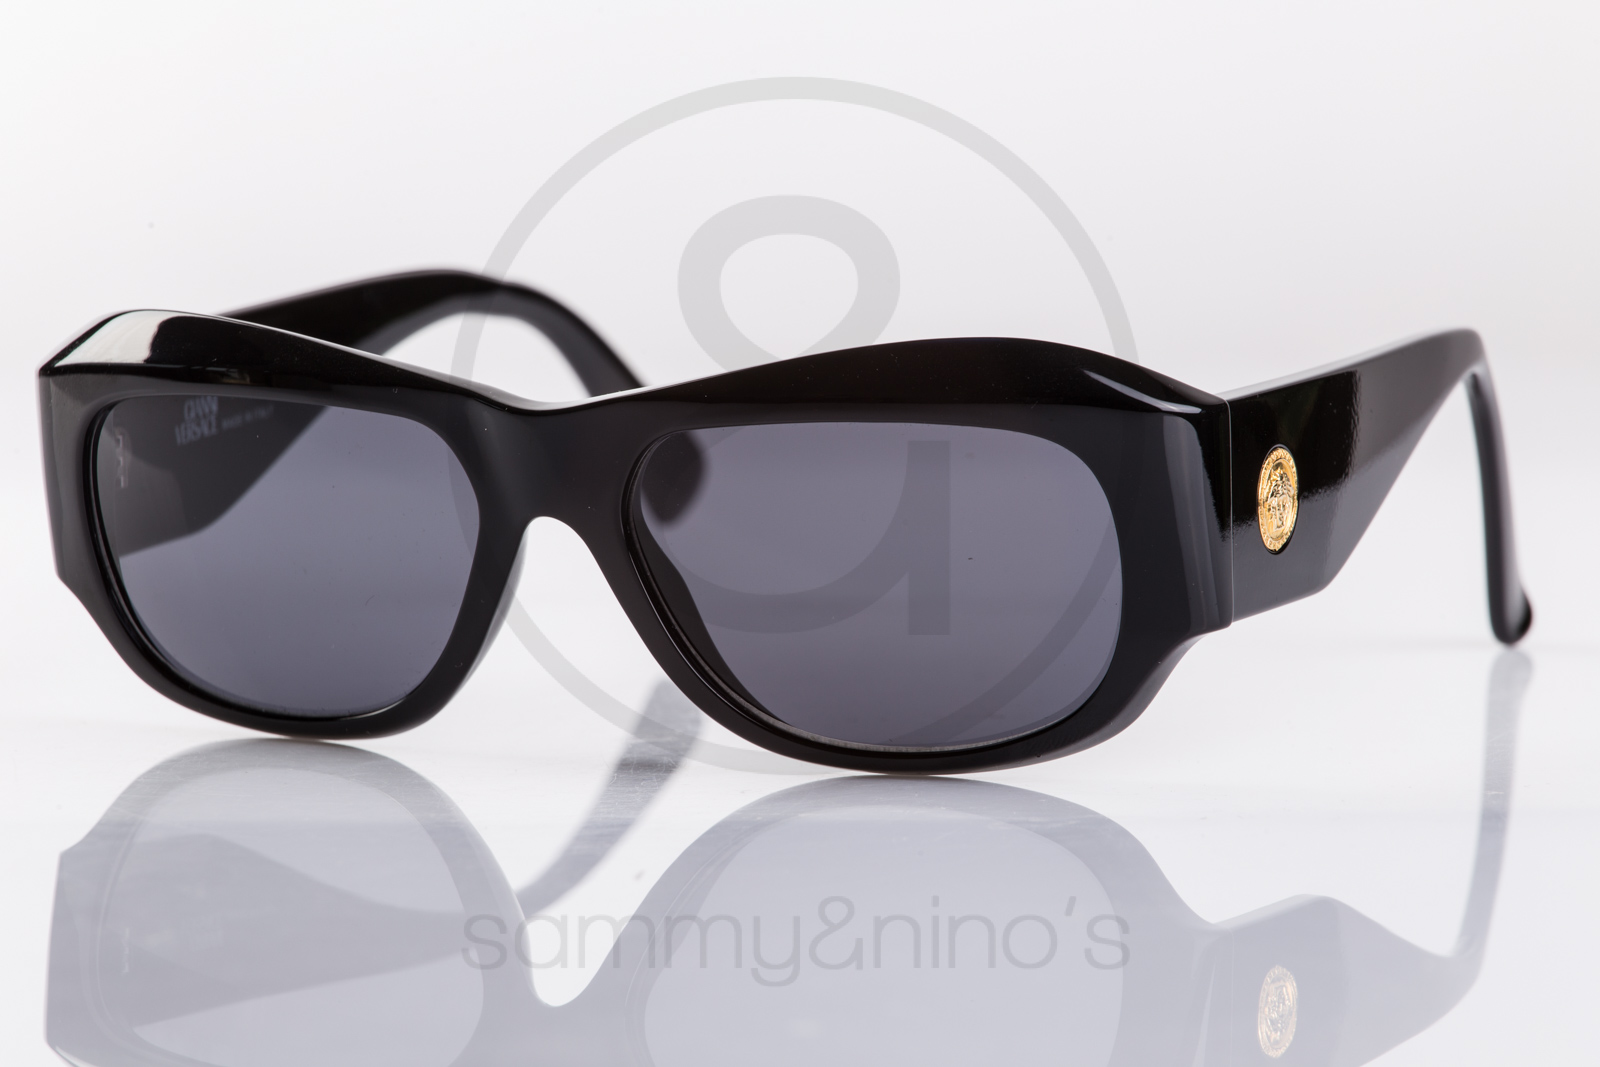 8008adcd3a Previous  Next. HomeSOLD OUTGianni Versace ...